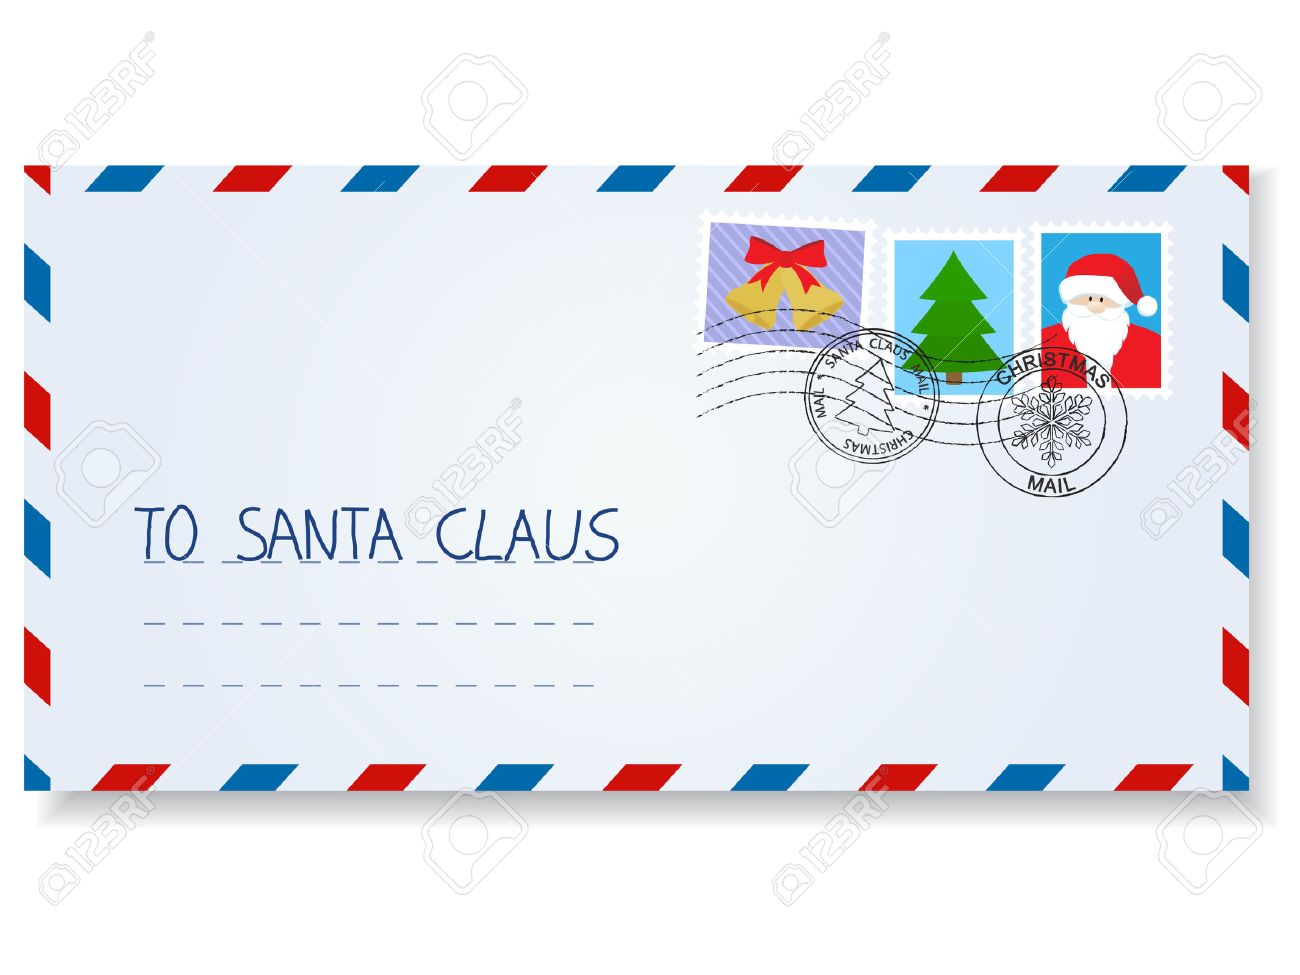 vector letter to santa claus with stamps and postage marks